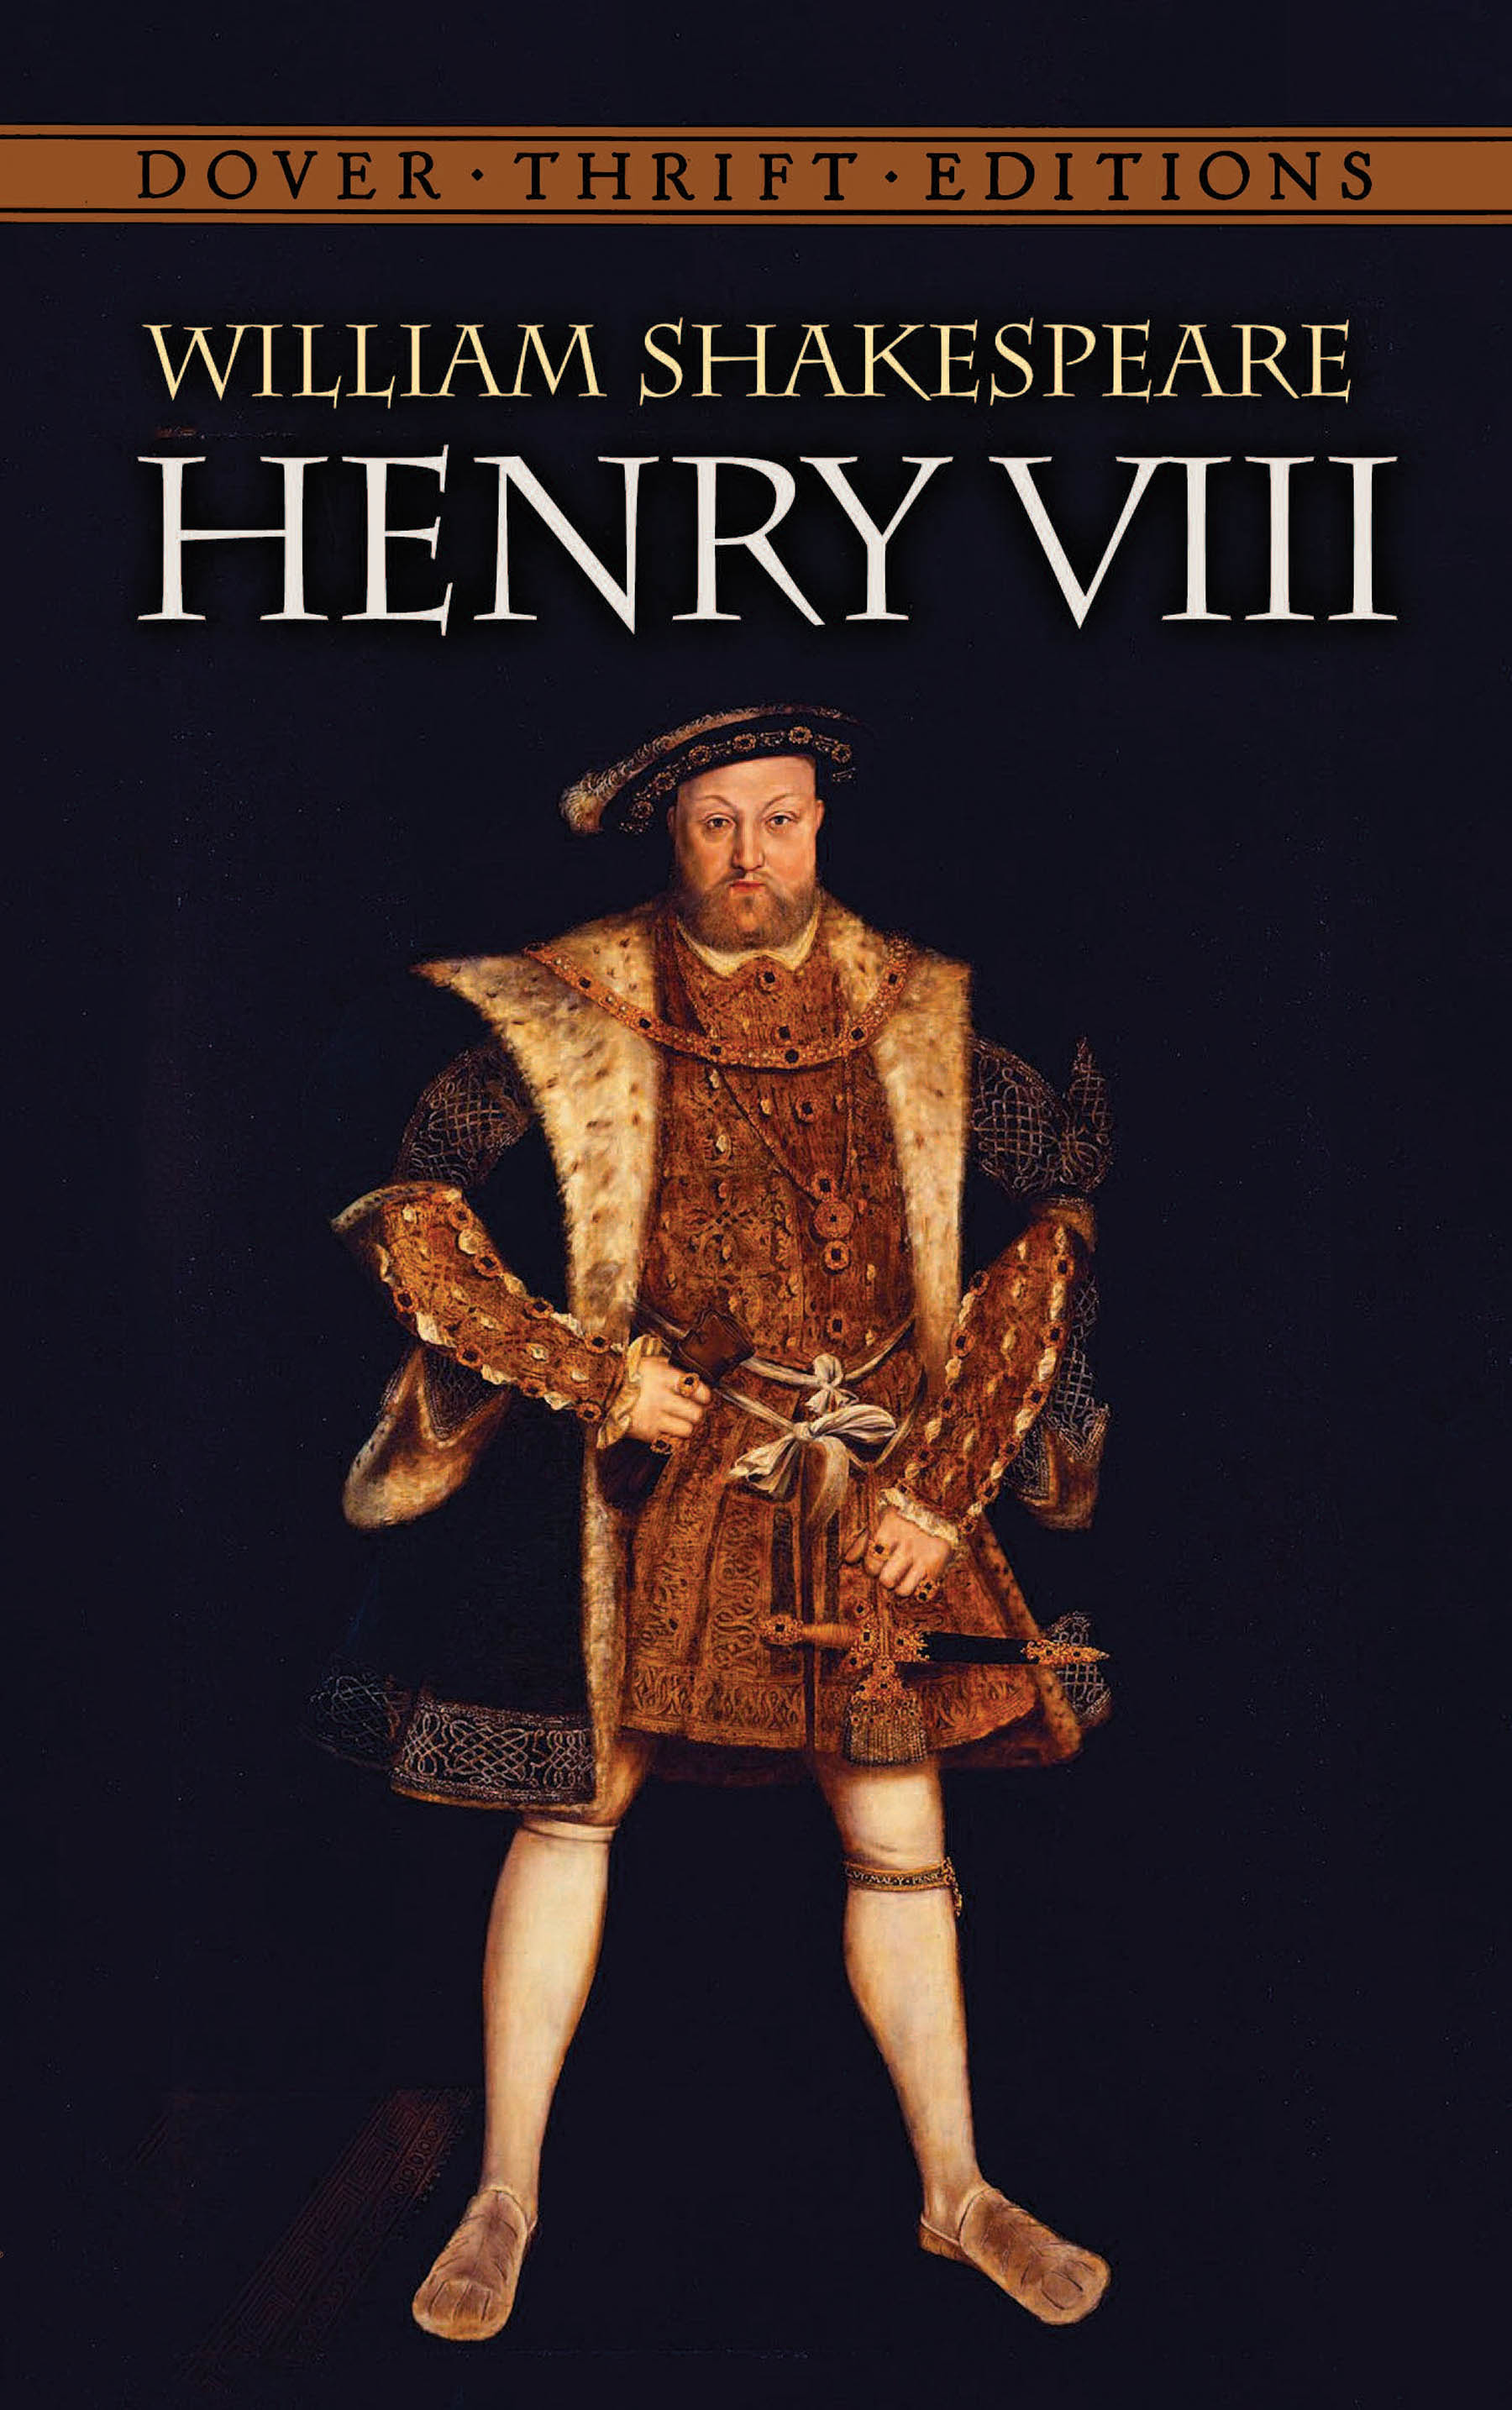 an analysis of the character of henry as a prince and as a king in william shakespeares play henry i The king's speech: a rhetorical analysis of shakespeare's henry iv, part 1 a thesis submitted to the graduate faculty of the university of new orleans in.